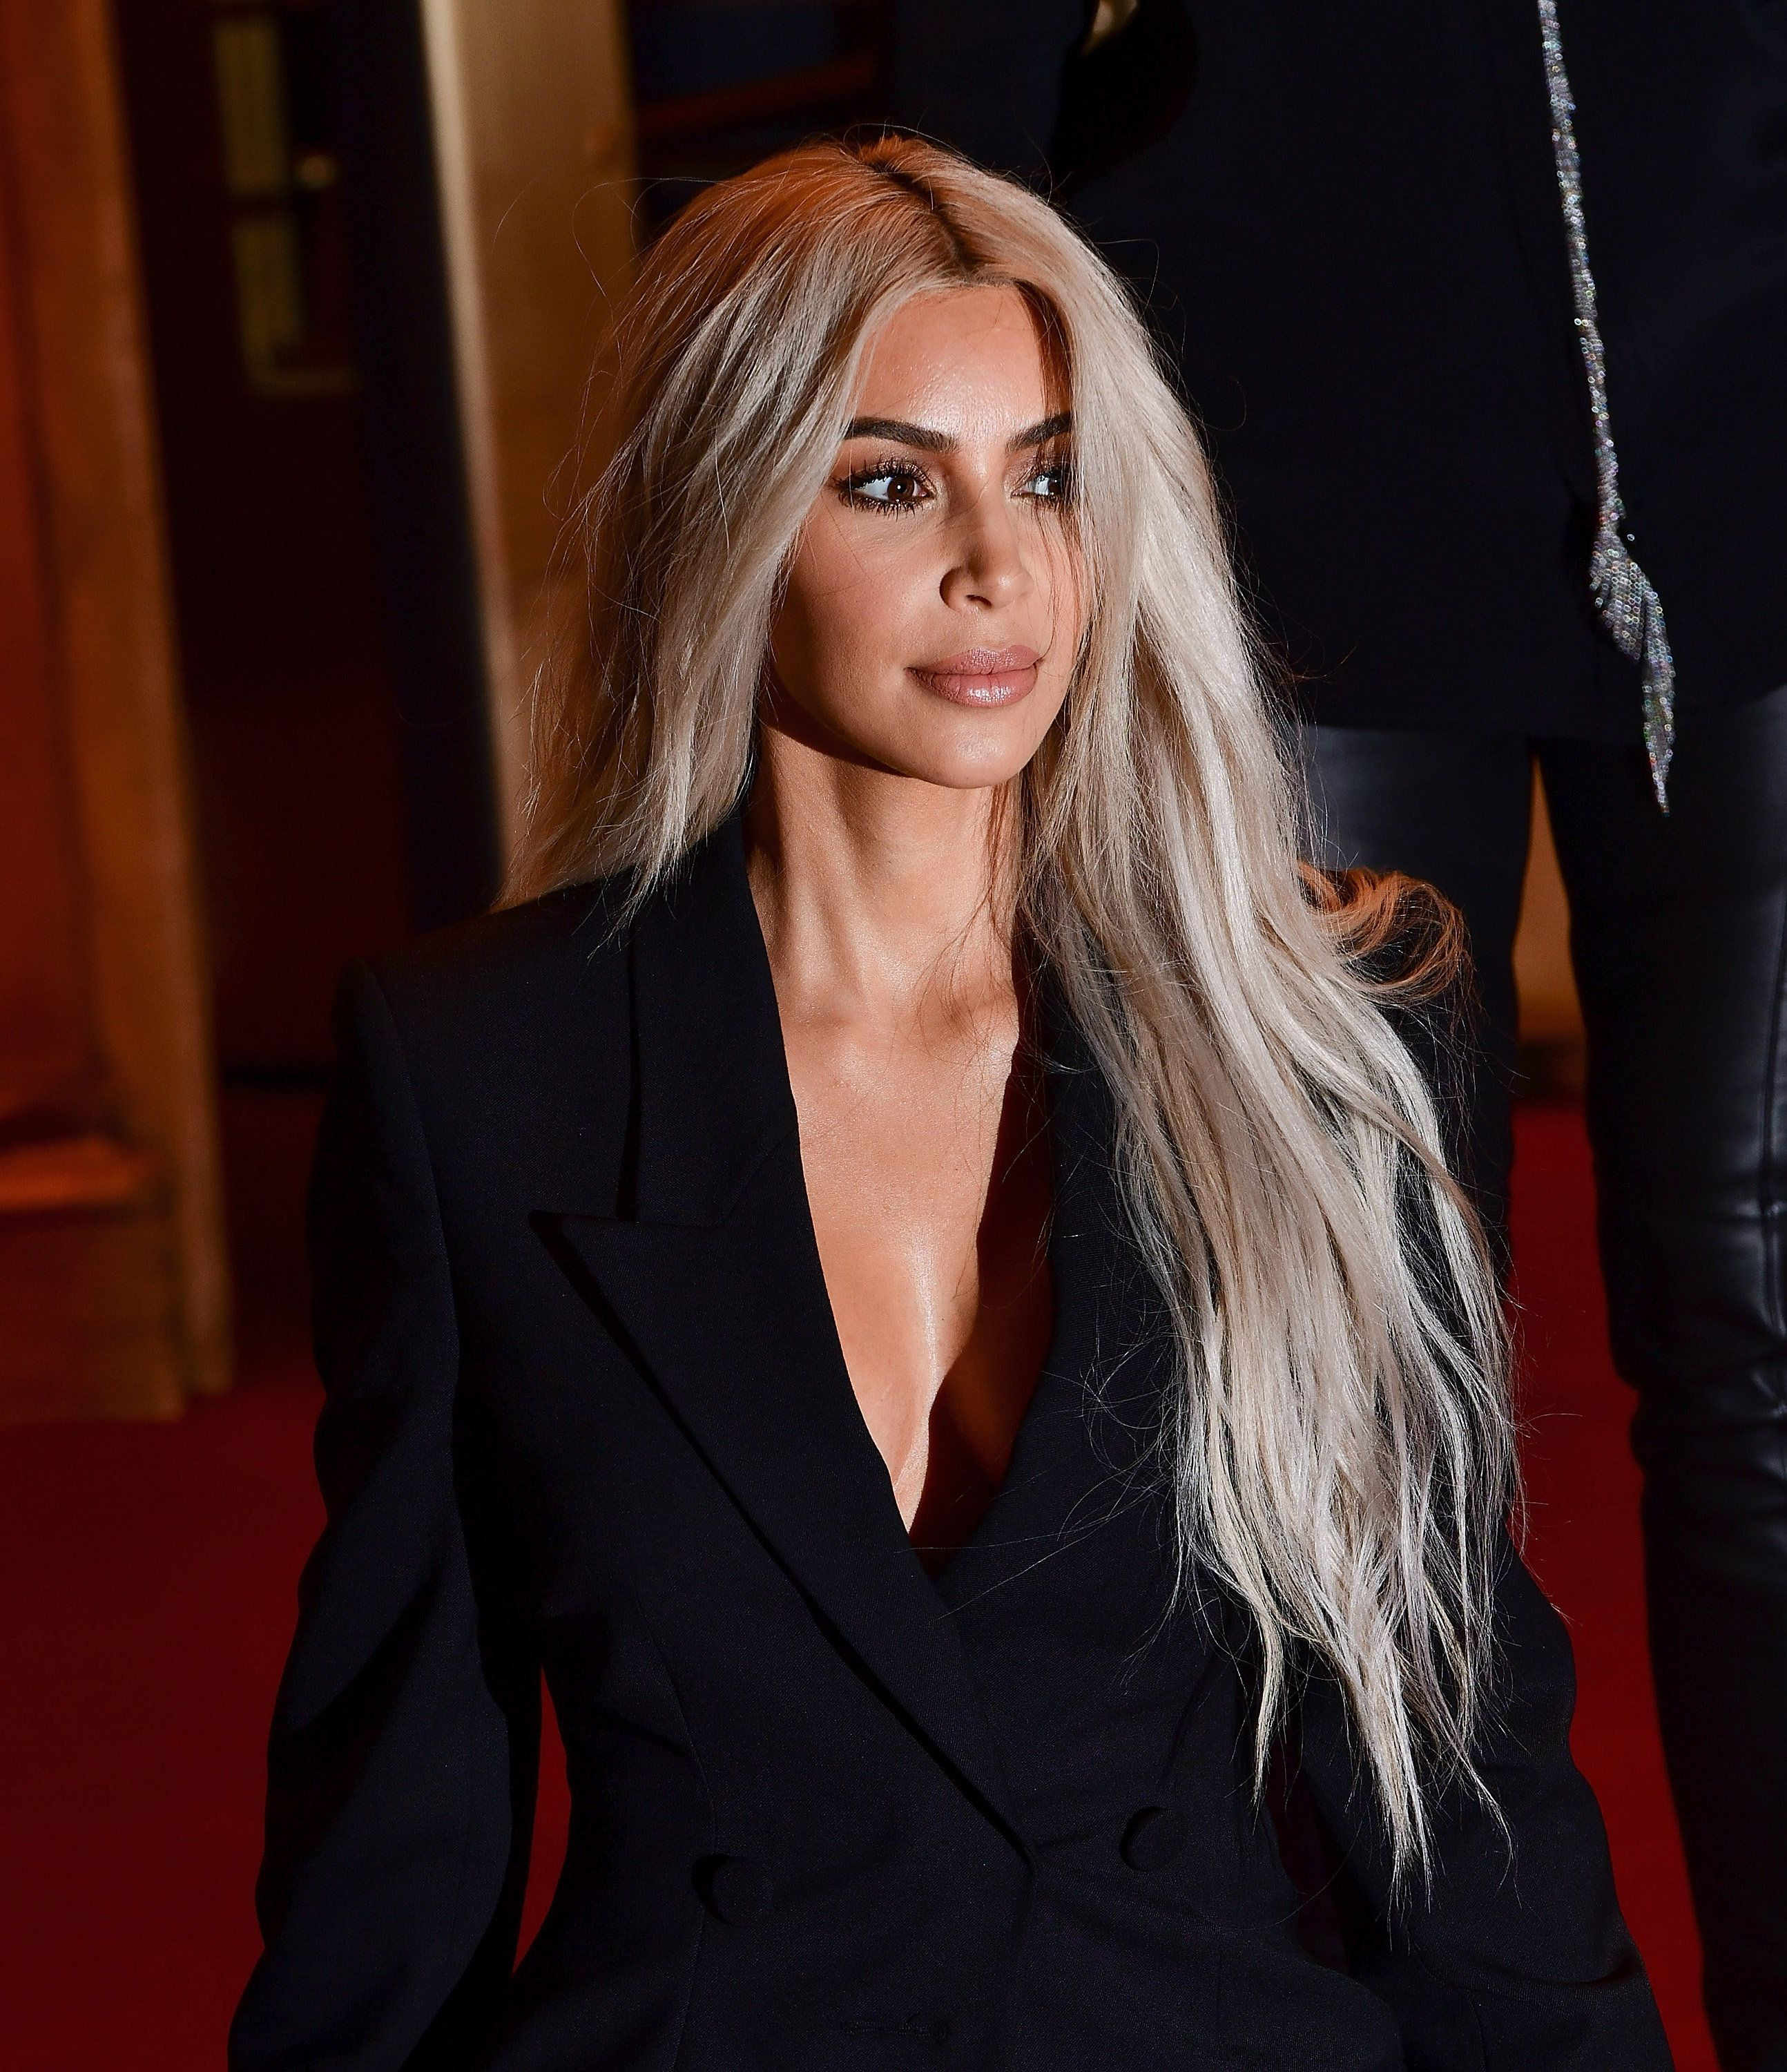 Kim Kardashian West Confirms She And Kanye West Are Expecting Baby Number